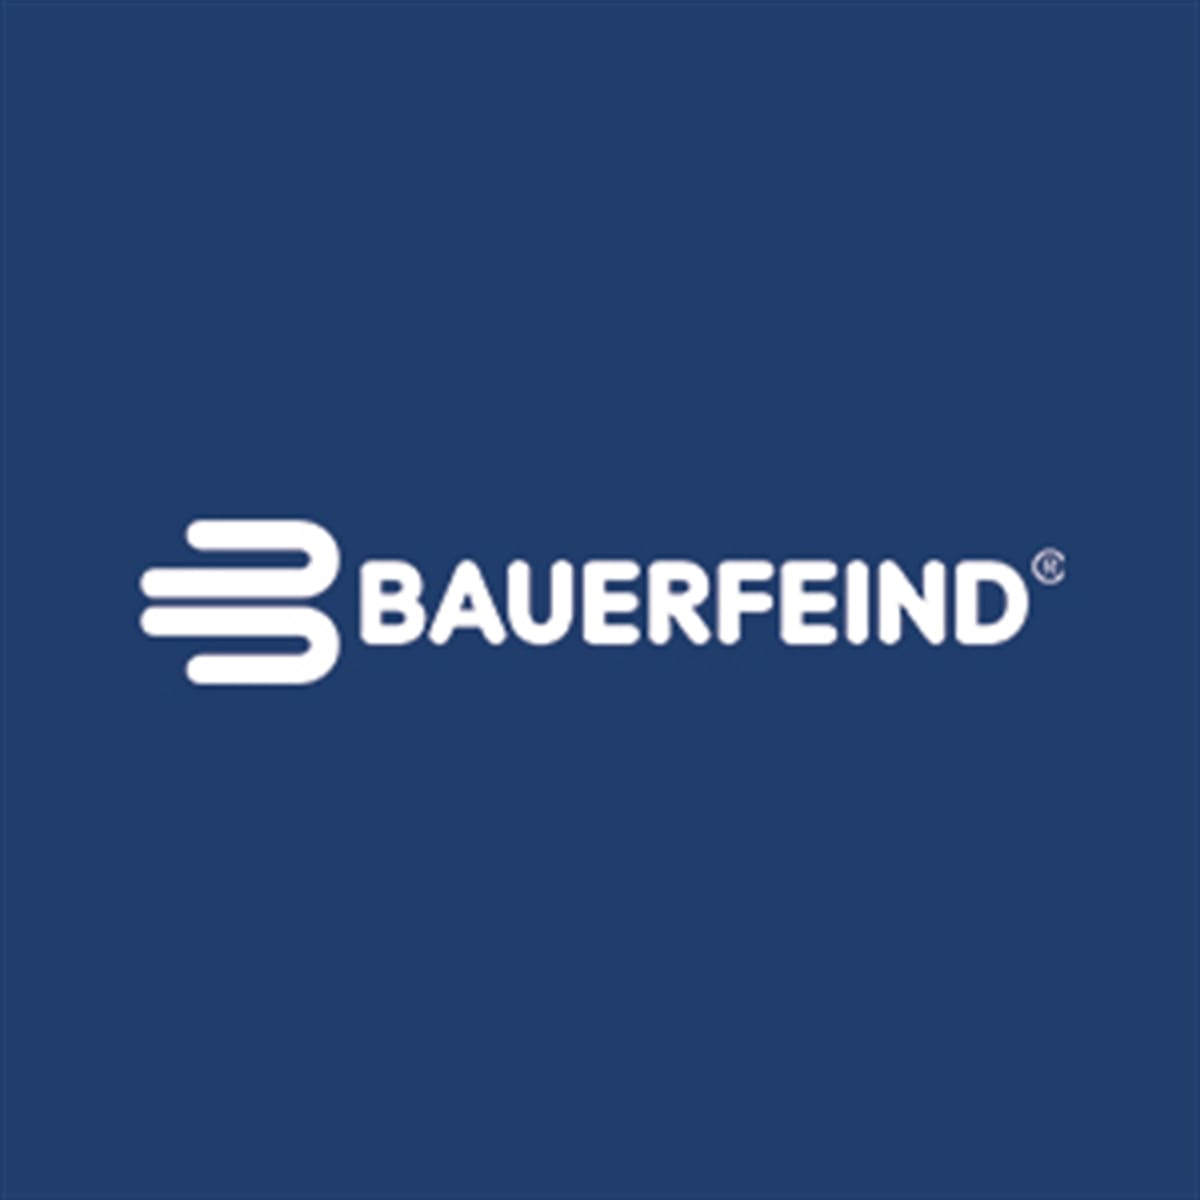 4cfc10d85b Bauerfeind - Discounts for Military & Gov't | GovX